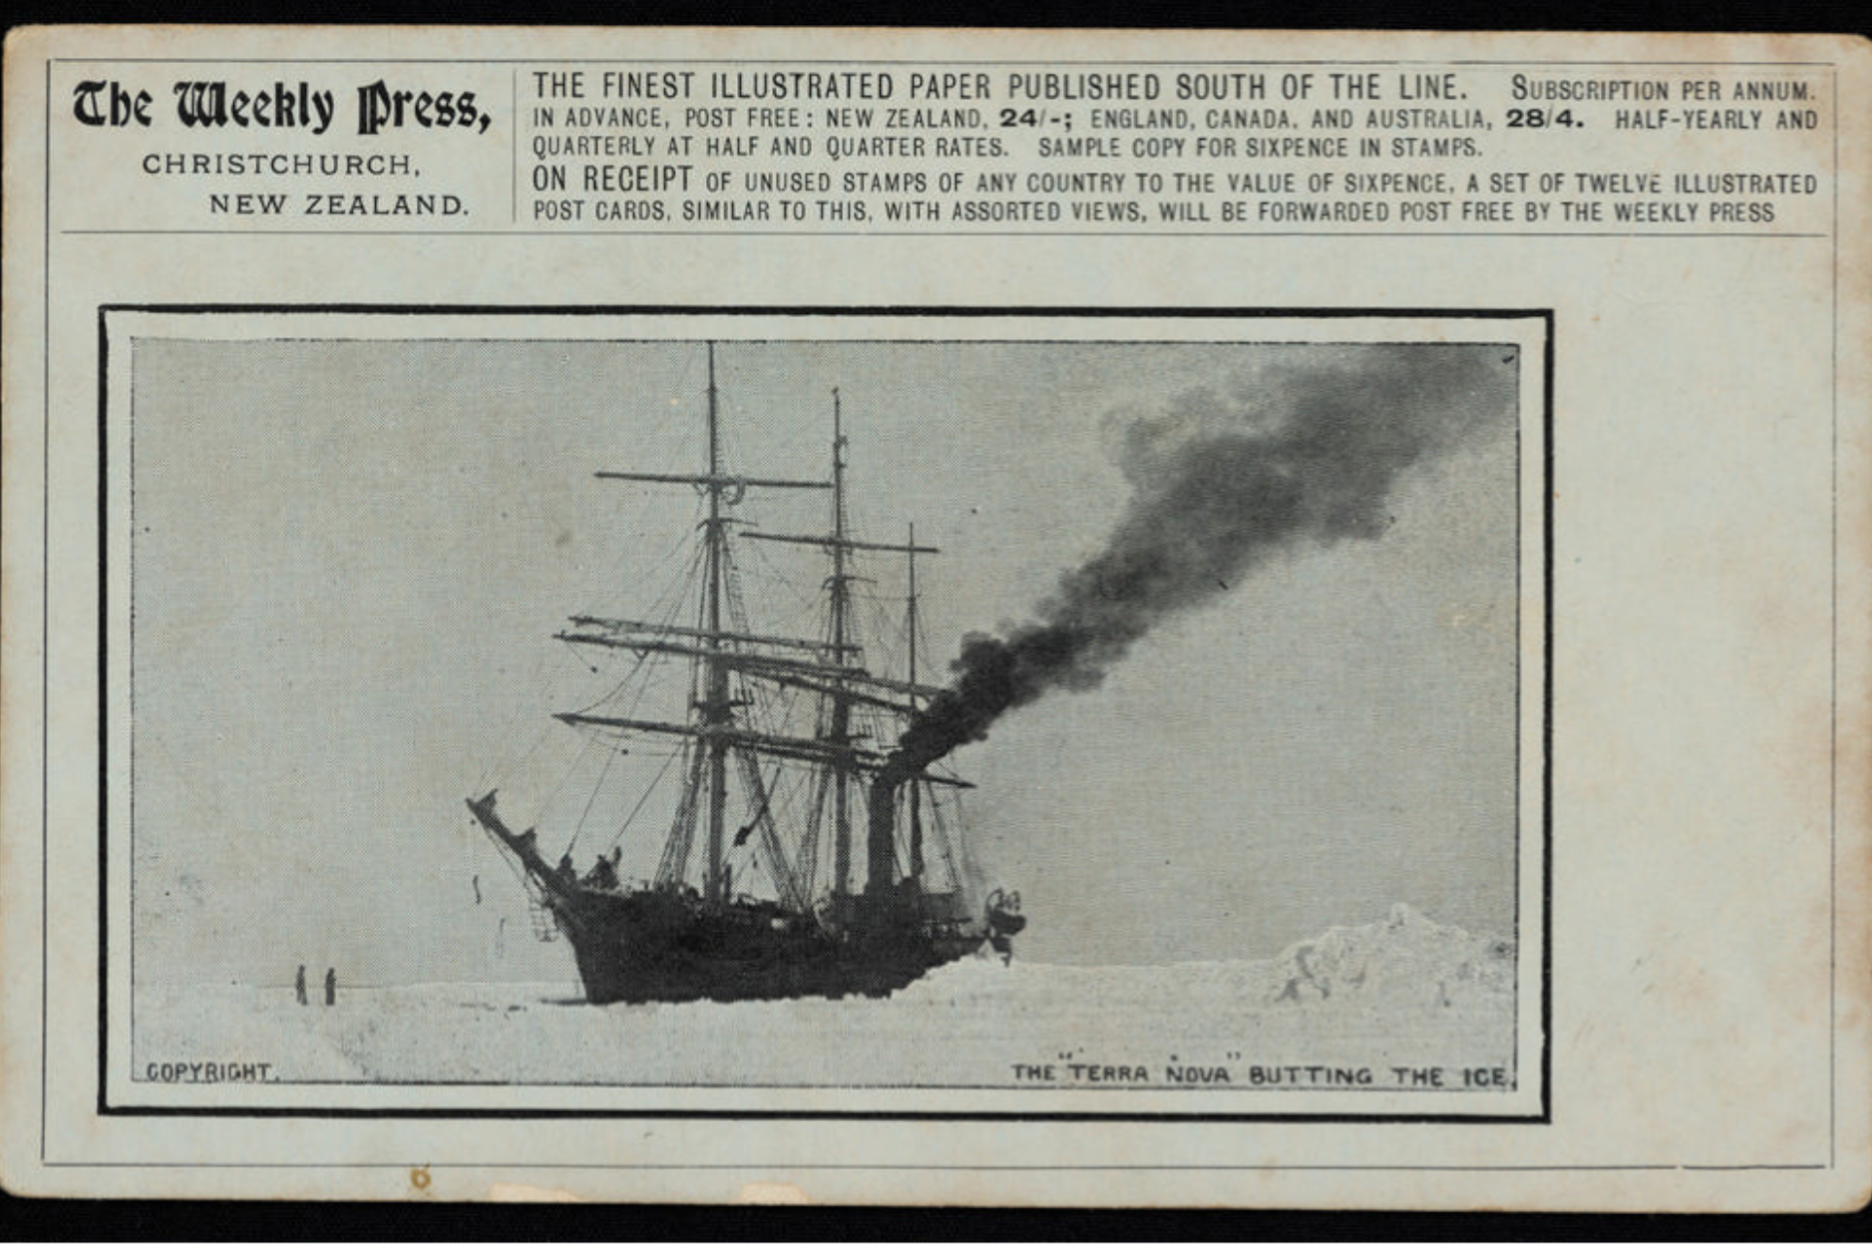 9921 1 The Weekly Press Postcard, the 'Terra Nova' in the Antarctic Ice, 1910-13.